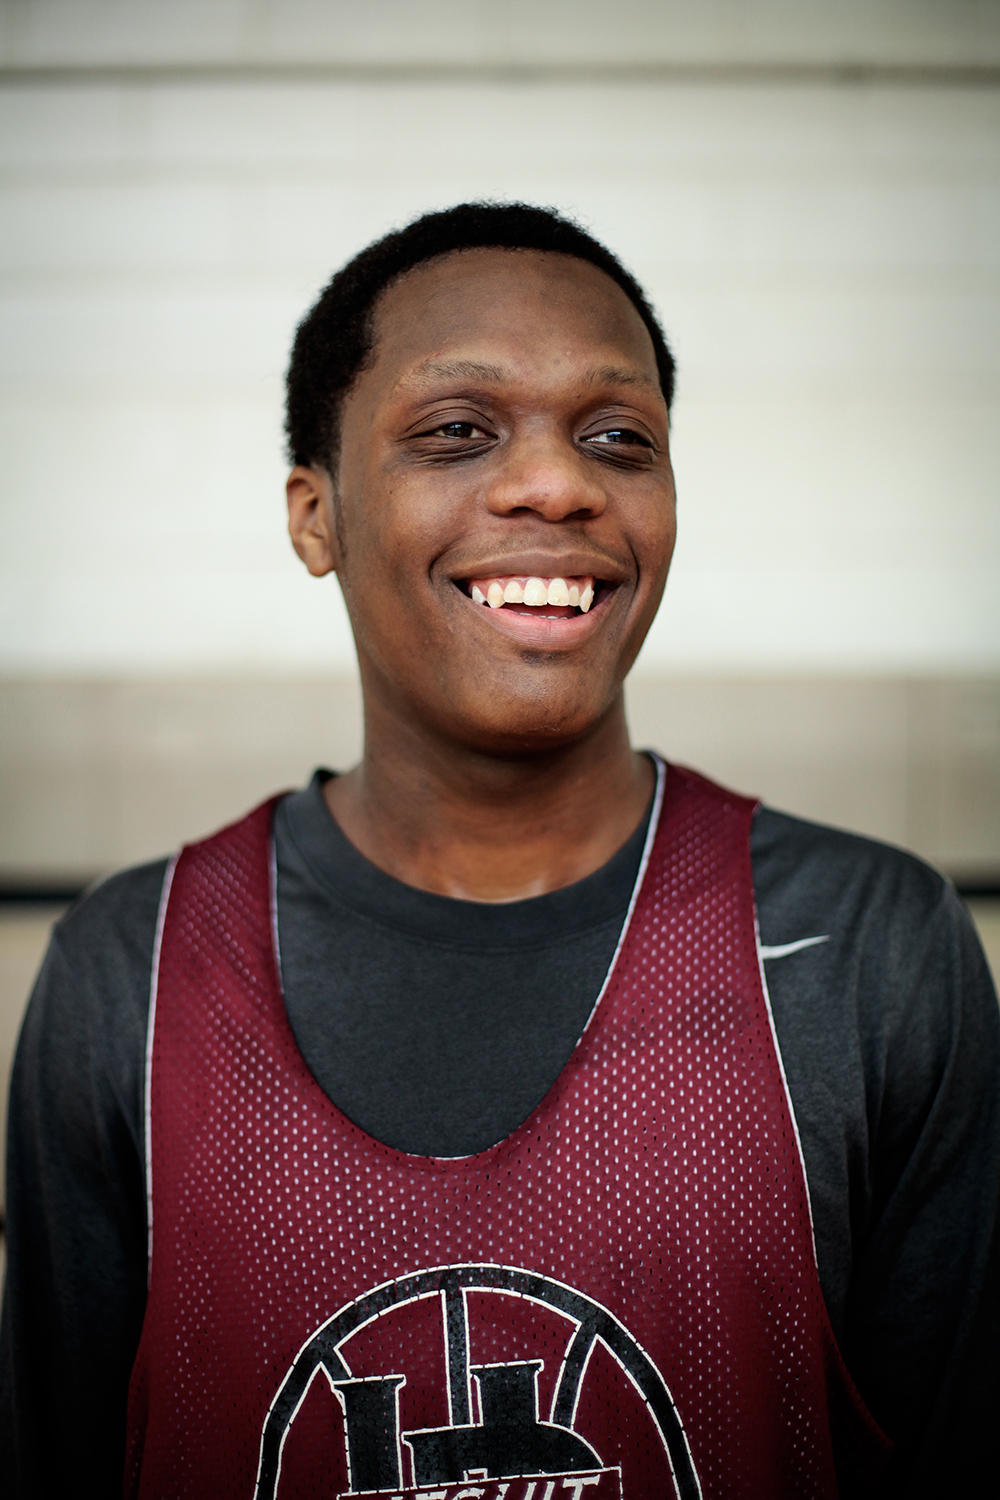 Cassius Winston, 16, Junior, from Detroit pauses for a portrait. Winston and his team practiced on the afternoon of Wednesday, Jan. 14, 2015 at the U of D Jesuit High School in Detroit. Tim Galloway/Special to DFP